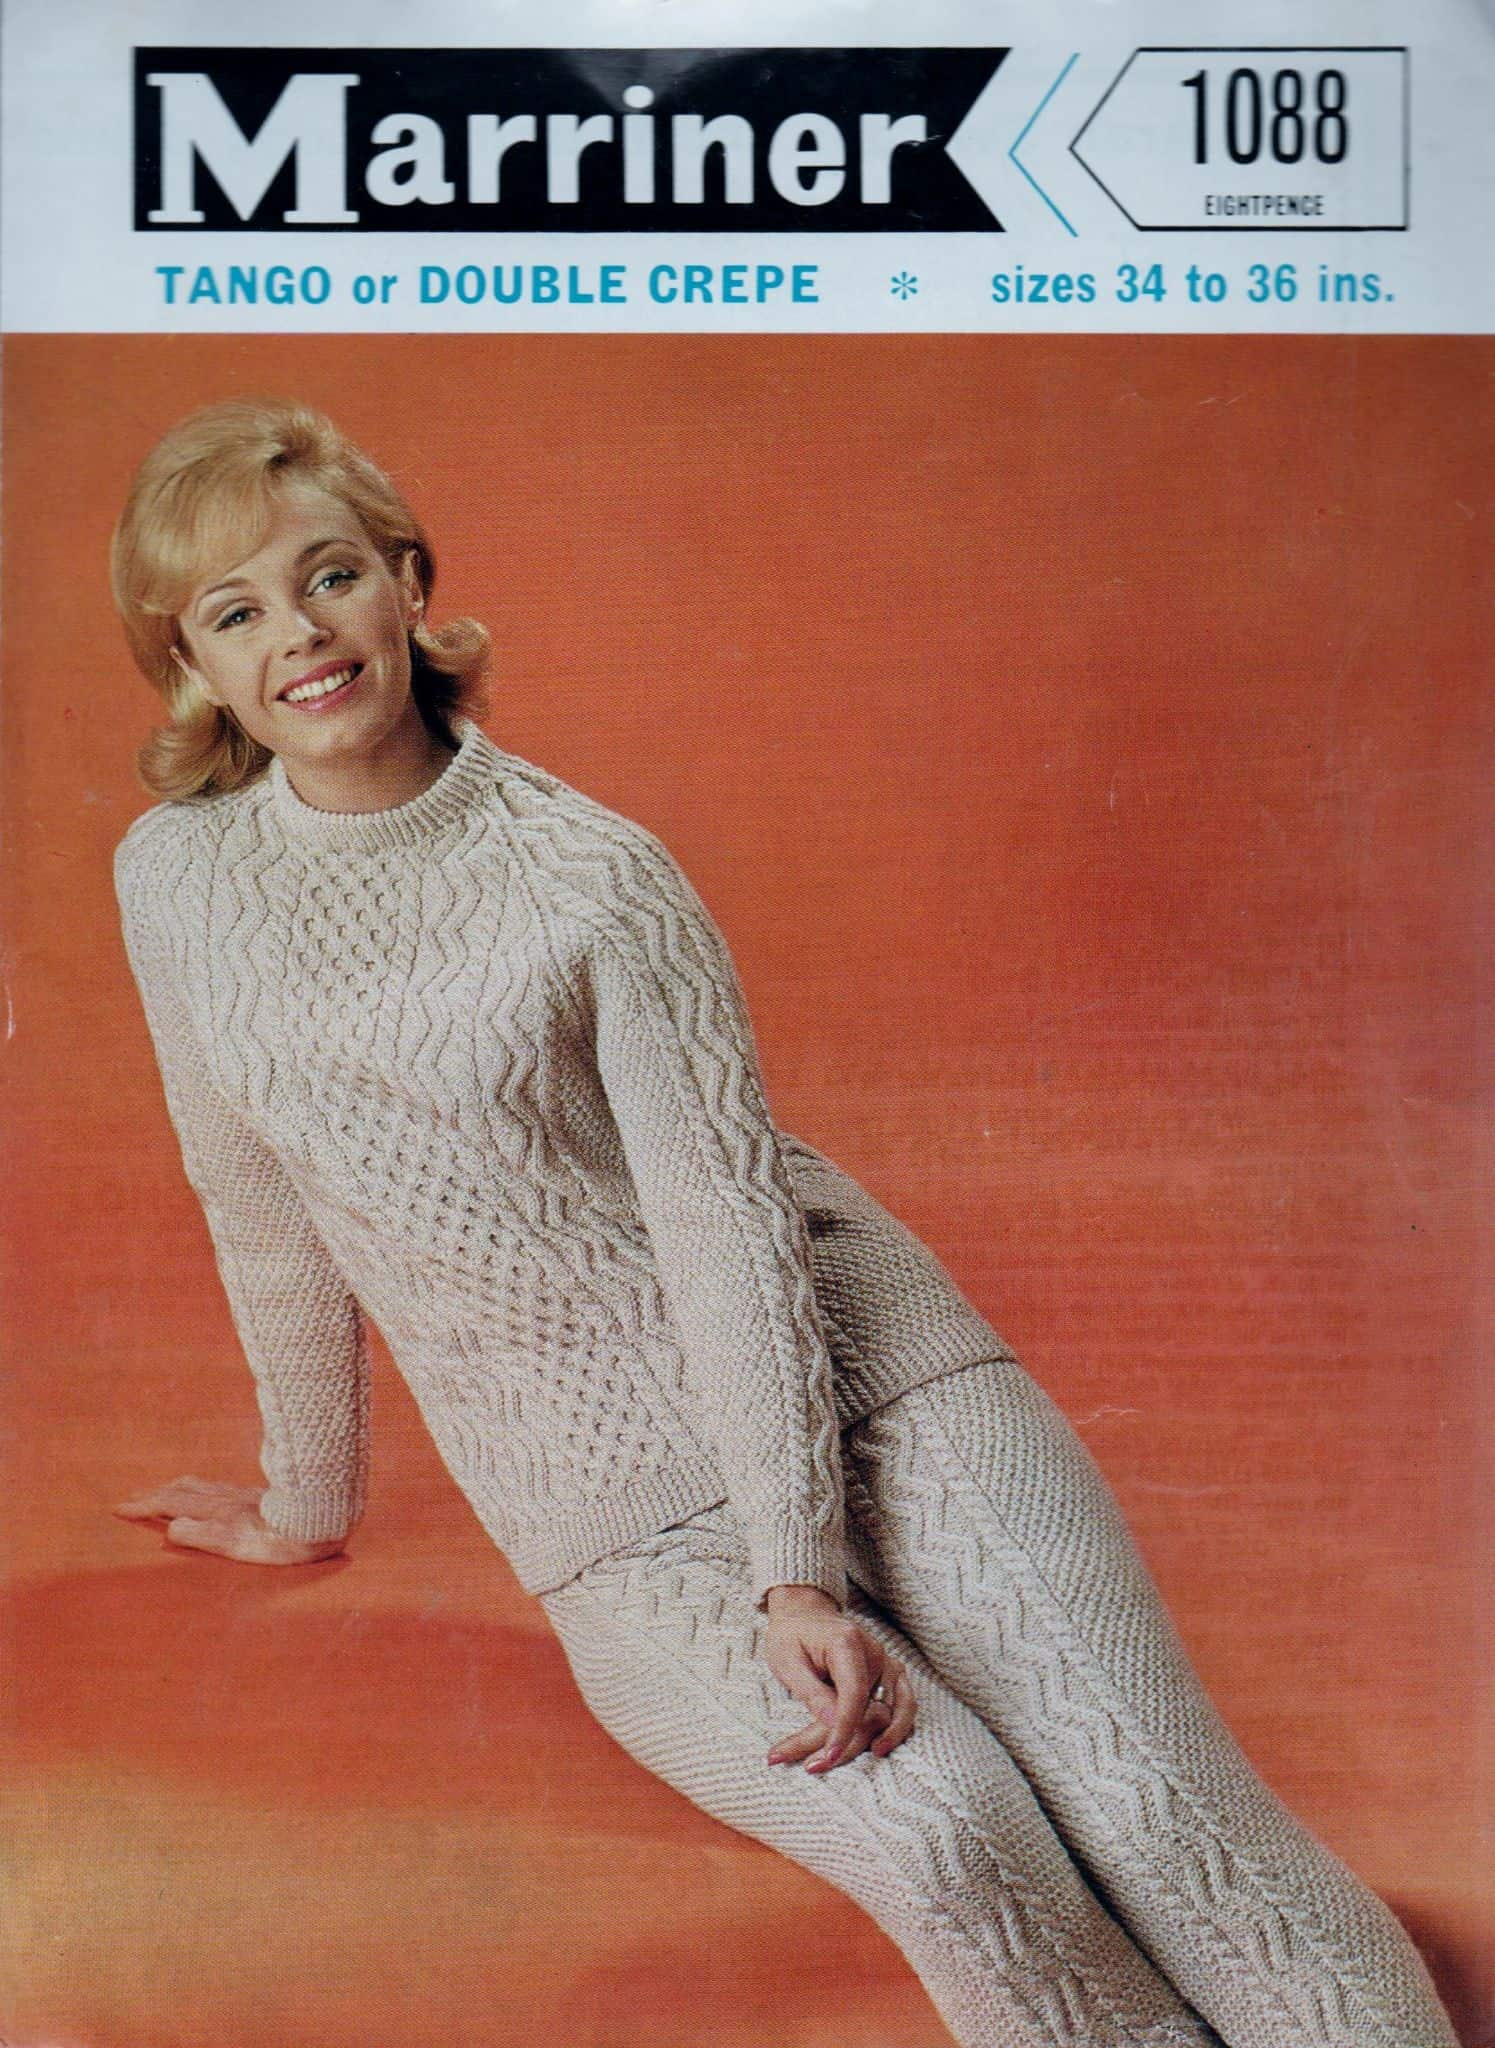 Vinage cabled sweater and leggings pattern